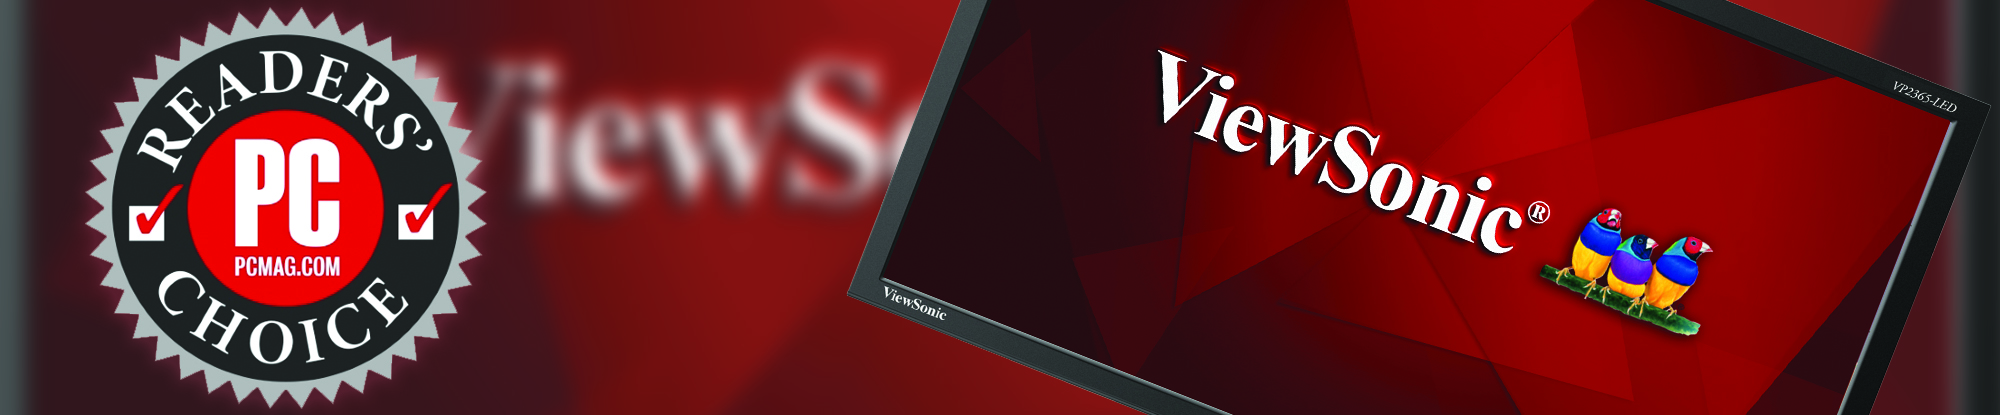 ViewSonic Wins PCMag Readers' Choice Award by  Sweeping the Overall Monitor Category